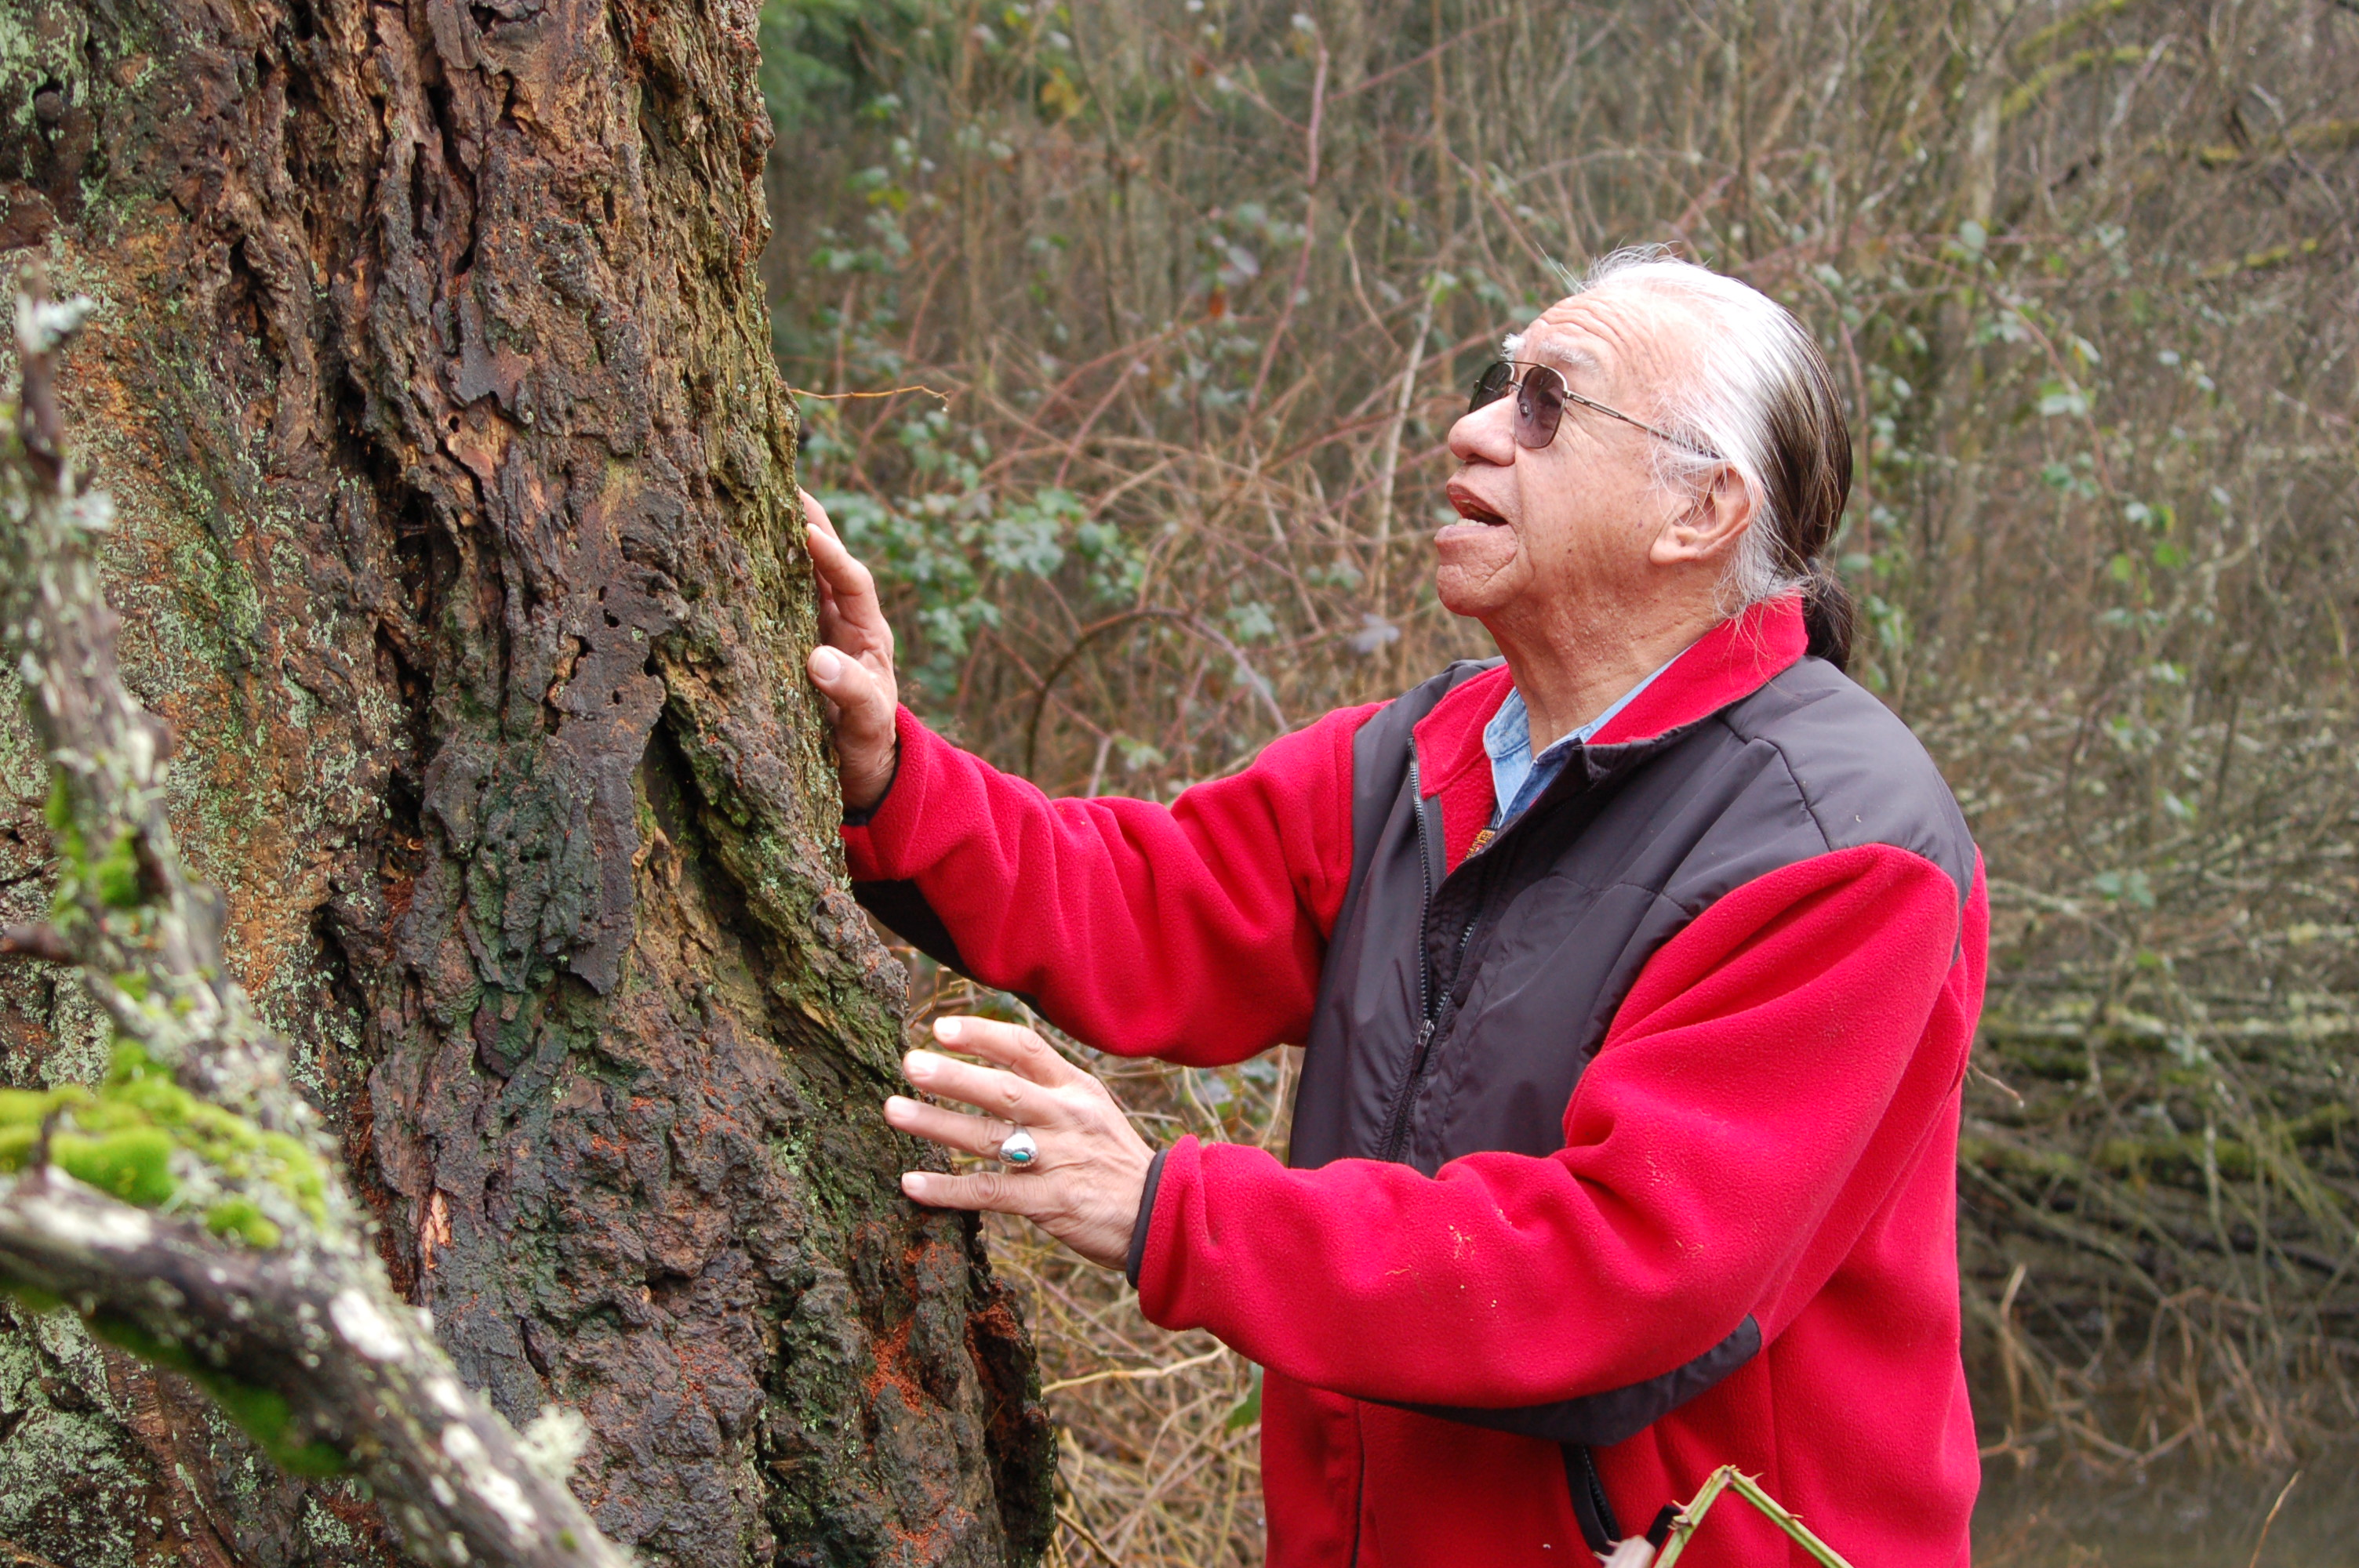 An older Native American man stands in a forest and touches a tree with both hands.